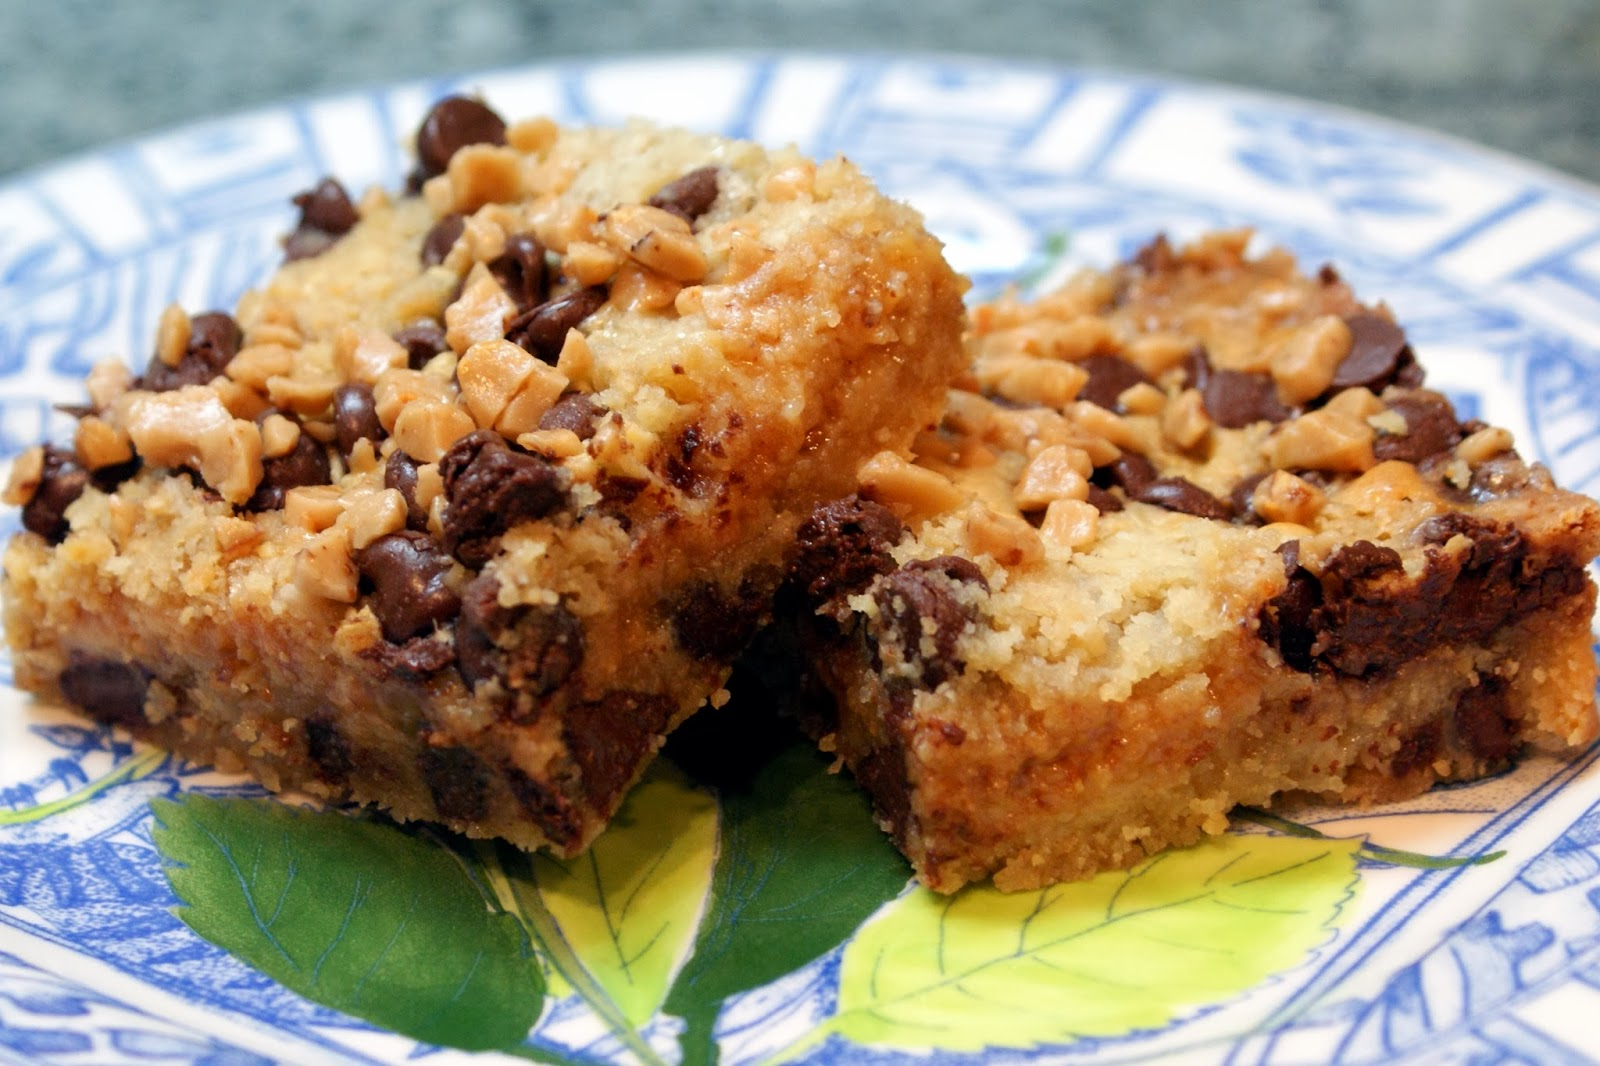 The Baker's Mann: Chocolate Chip Toffee Bars